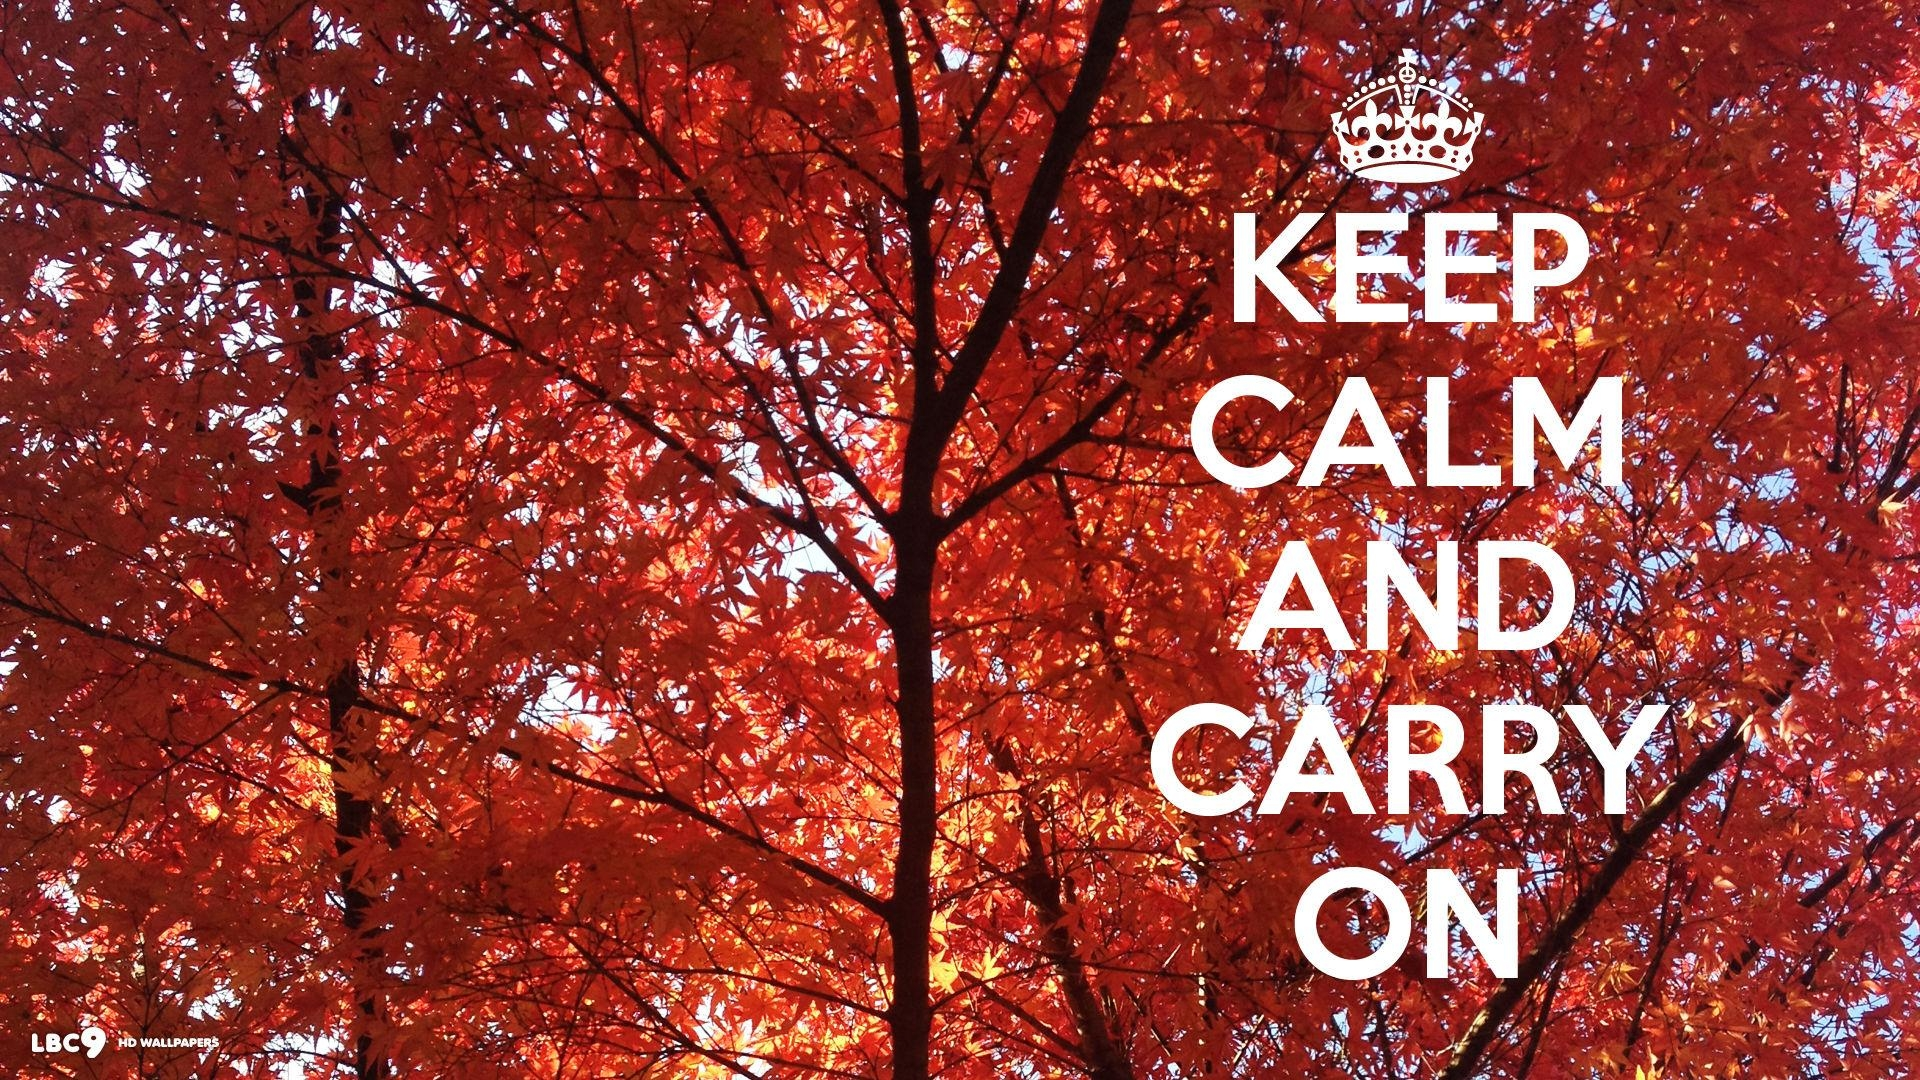 Keep Calm And Carry On Wallpaper 21/25 | Typography Hd Backgrounds With Regard To Keep Calm And Carry On Wall Art (Image 14 of 20)